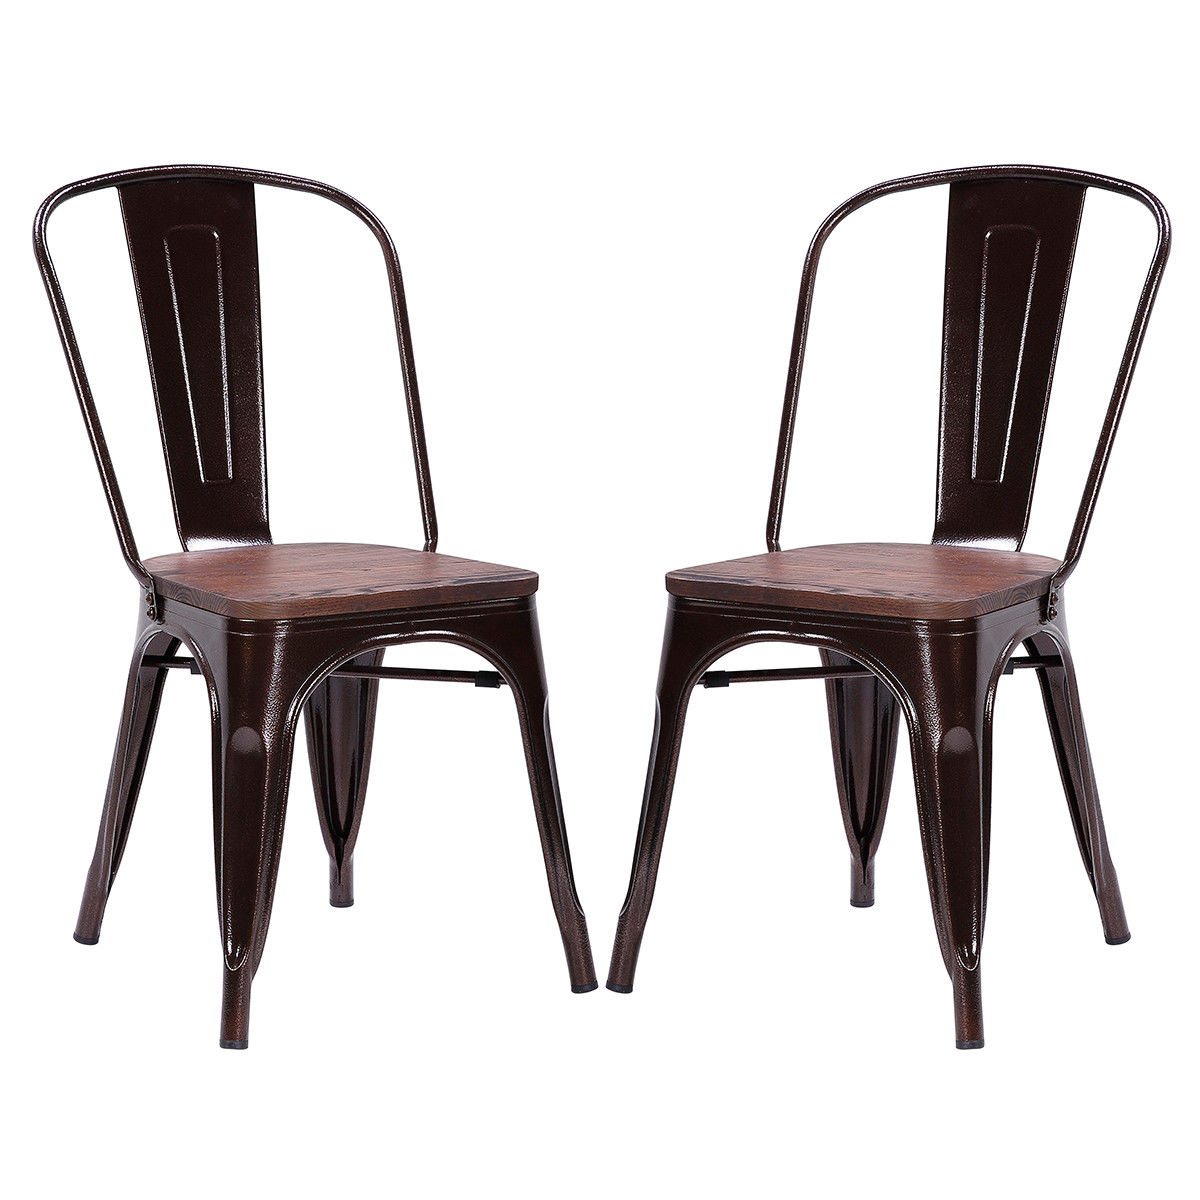 Giantex Set of 2pcs Dining Side Chair Stackable Bistro Metal Wood Stool Modern Dining Room Furniture HW56682CP helix dining chair anti black gold set of 2